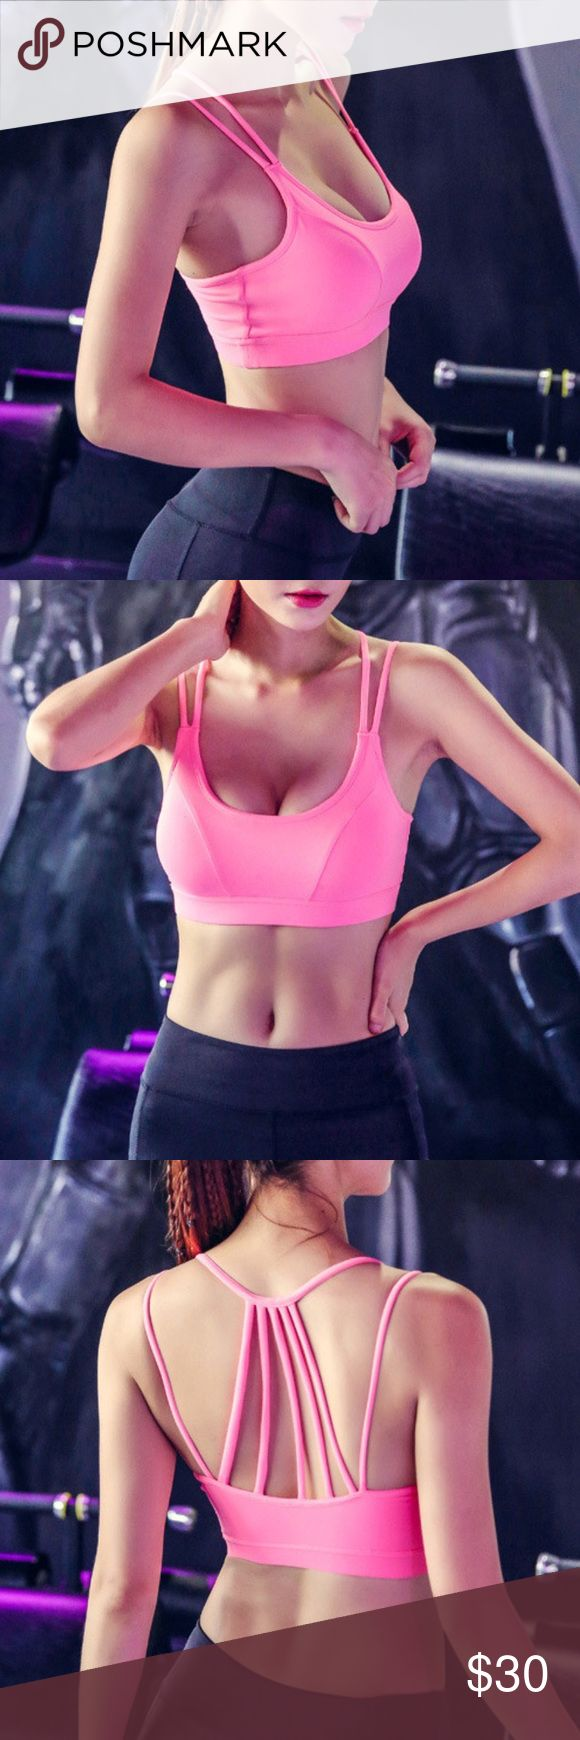 """PINK Workout Sports Bra light/medium support, feminine design, nylon/spandex blend, this listing is for the color pink. Blue, aqua, and black are available in another listing  🐇RESERVE out of stock sizes by purchasing any """"arriving🔜"""" option & it will automatically ship to you when its restocked. 🐢If you choose not to reserve, please be patient, priority stock goes to reserves first, then what is left will reflect in my closet Tops"""